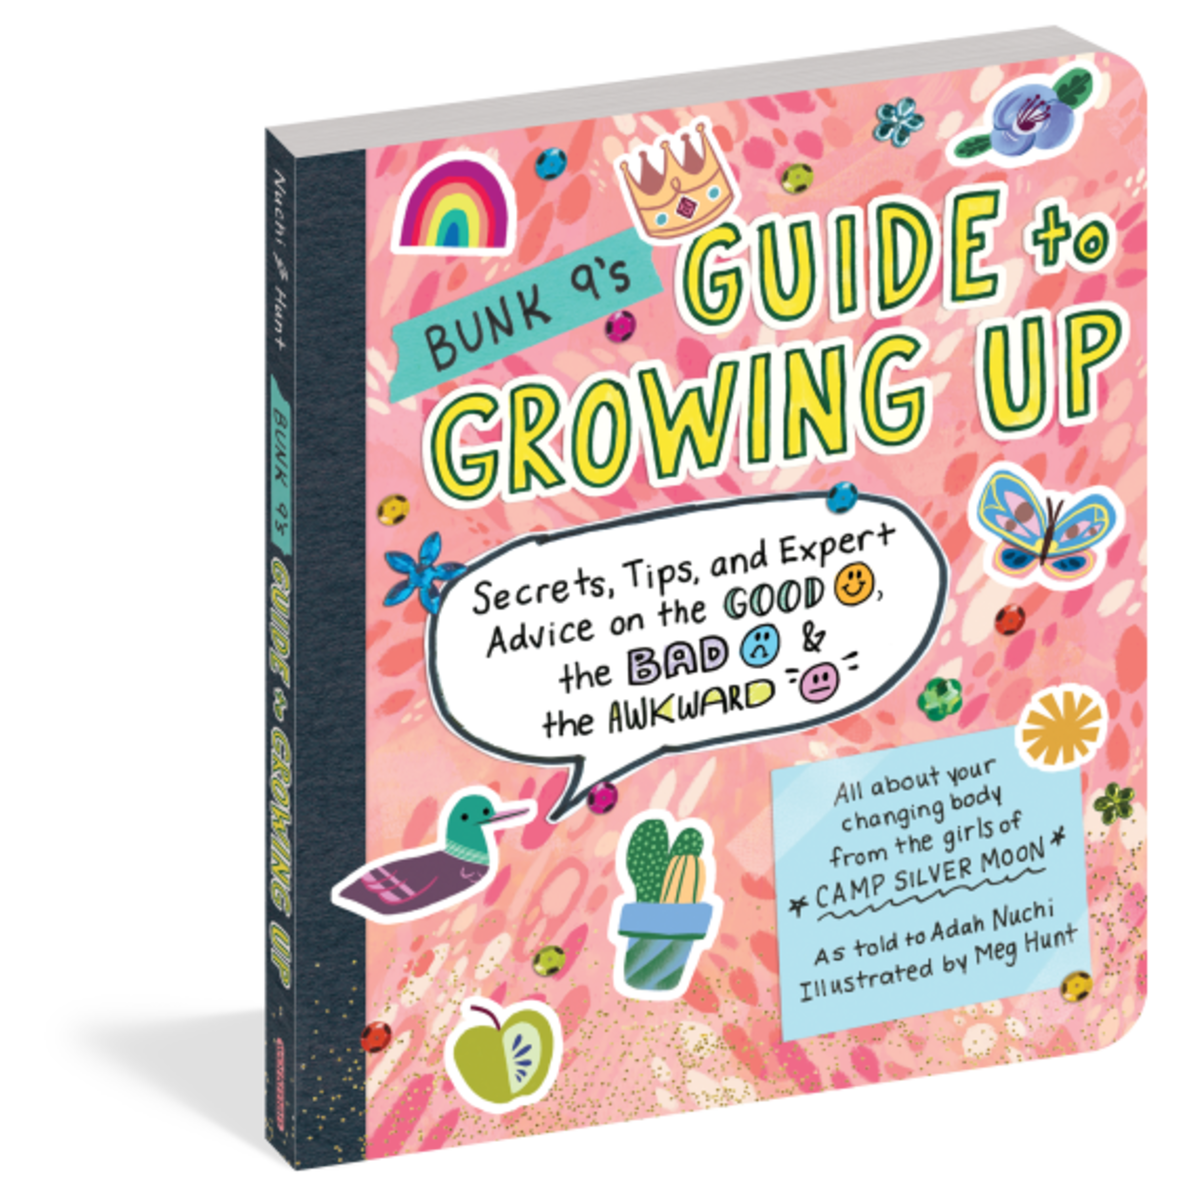 Bunk 9's Guide to Growing Up by Adah Nuchi